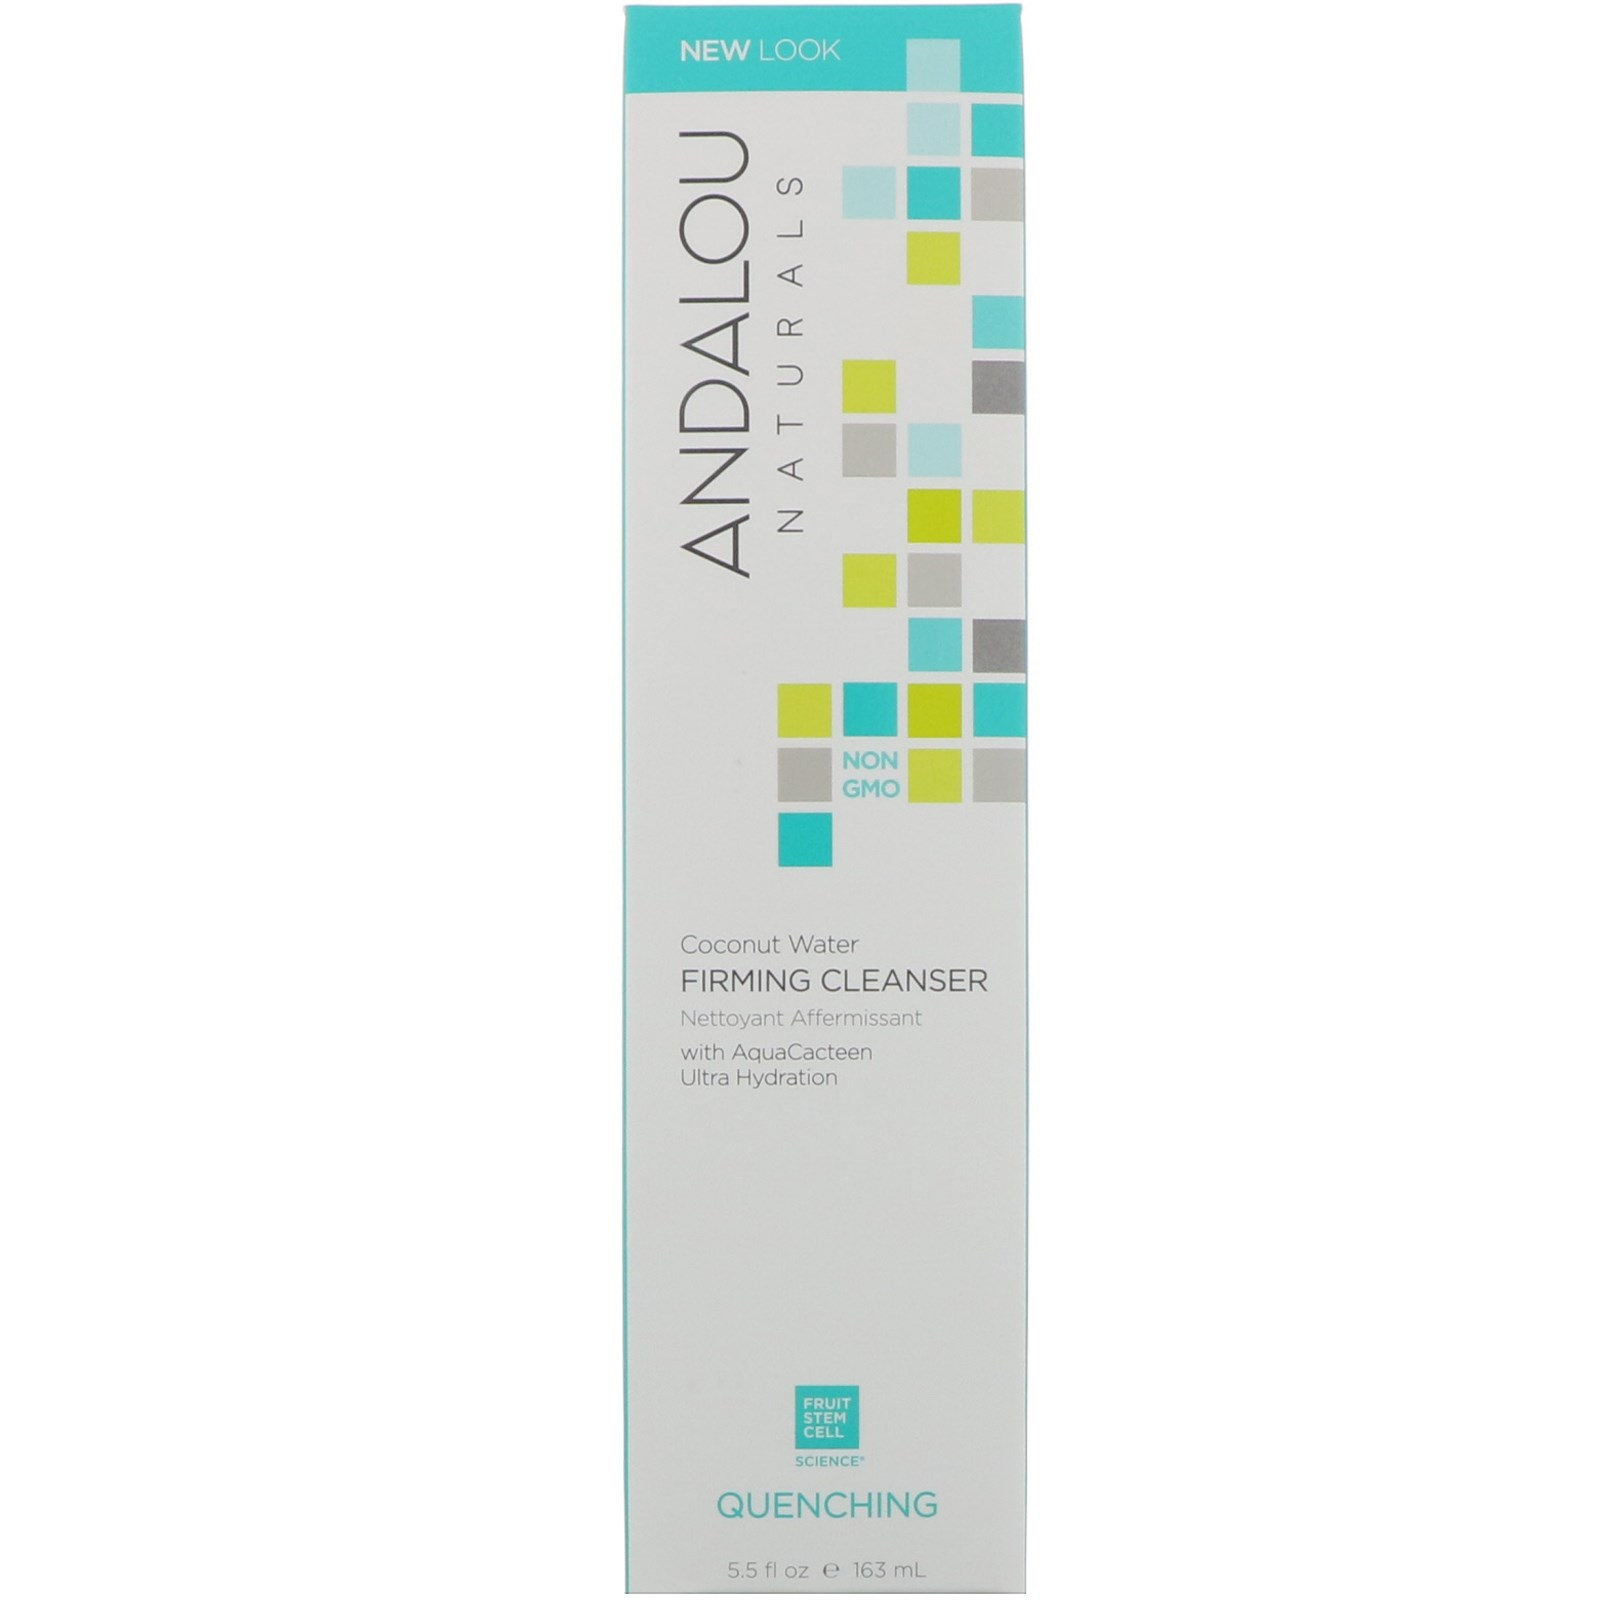 Coconut Water Firming Facial Cleanser - 5.5 fl. oz. by Andalou Naturals (pack of 1) Cetaphil Deep Cleansing Bar, Body And Face, All Skin Types, 4.5 Oz , 3 Pack